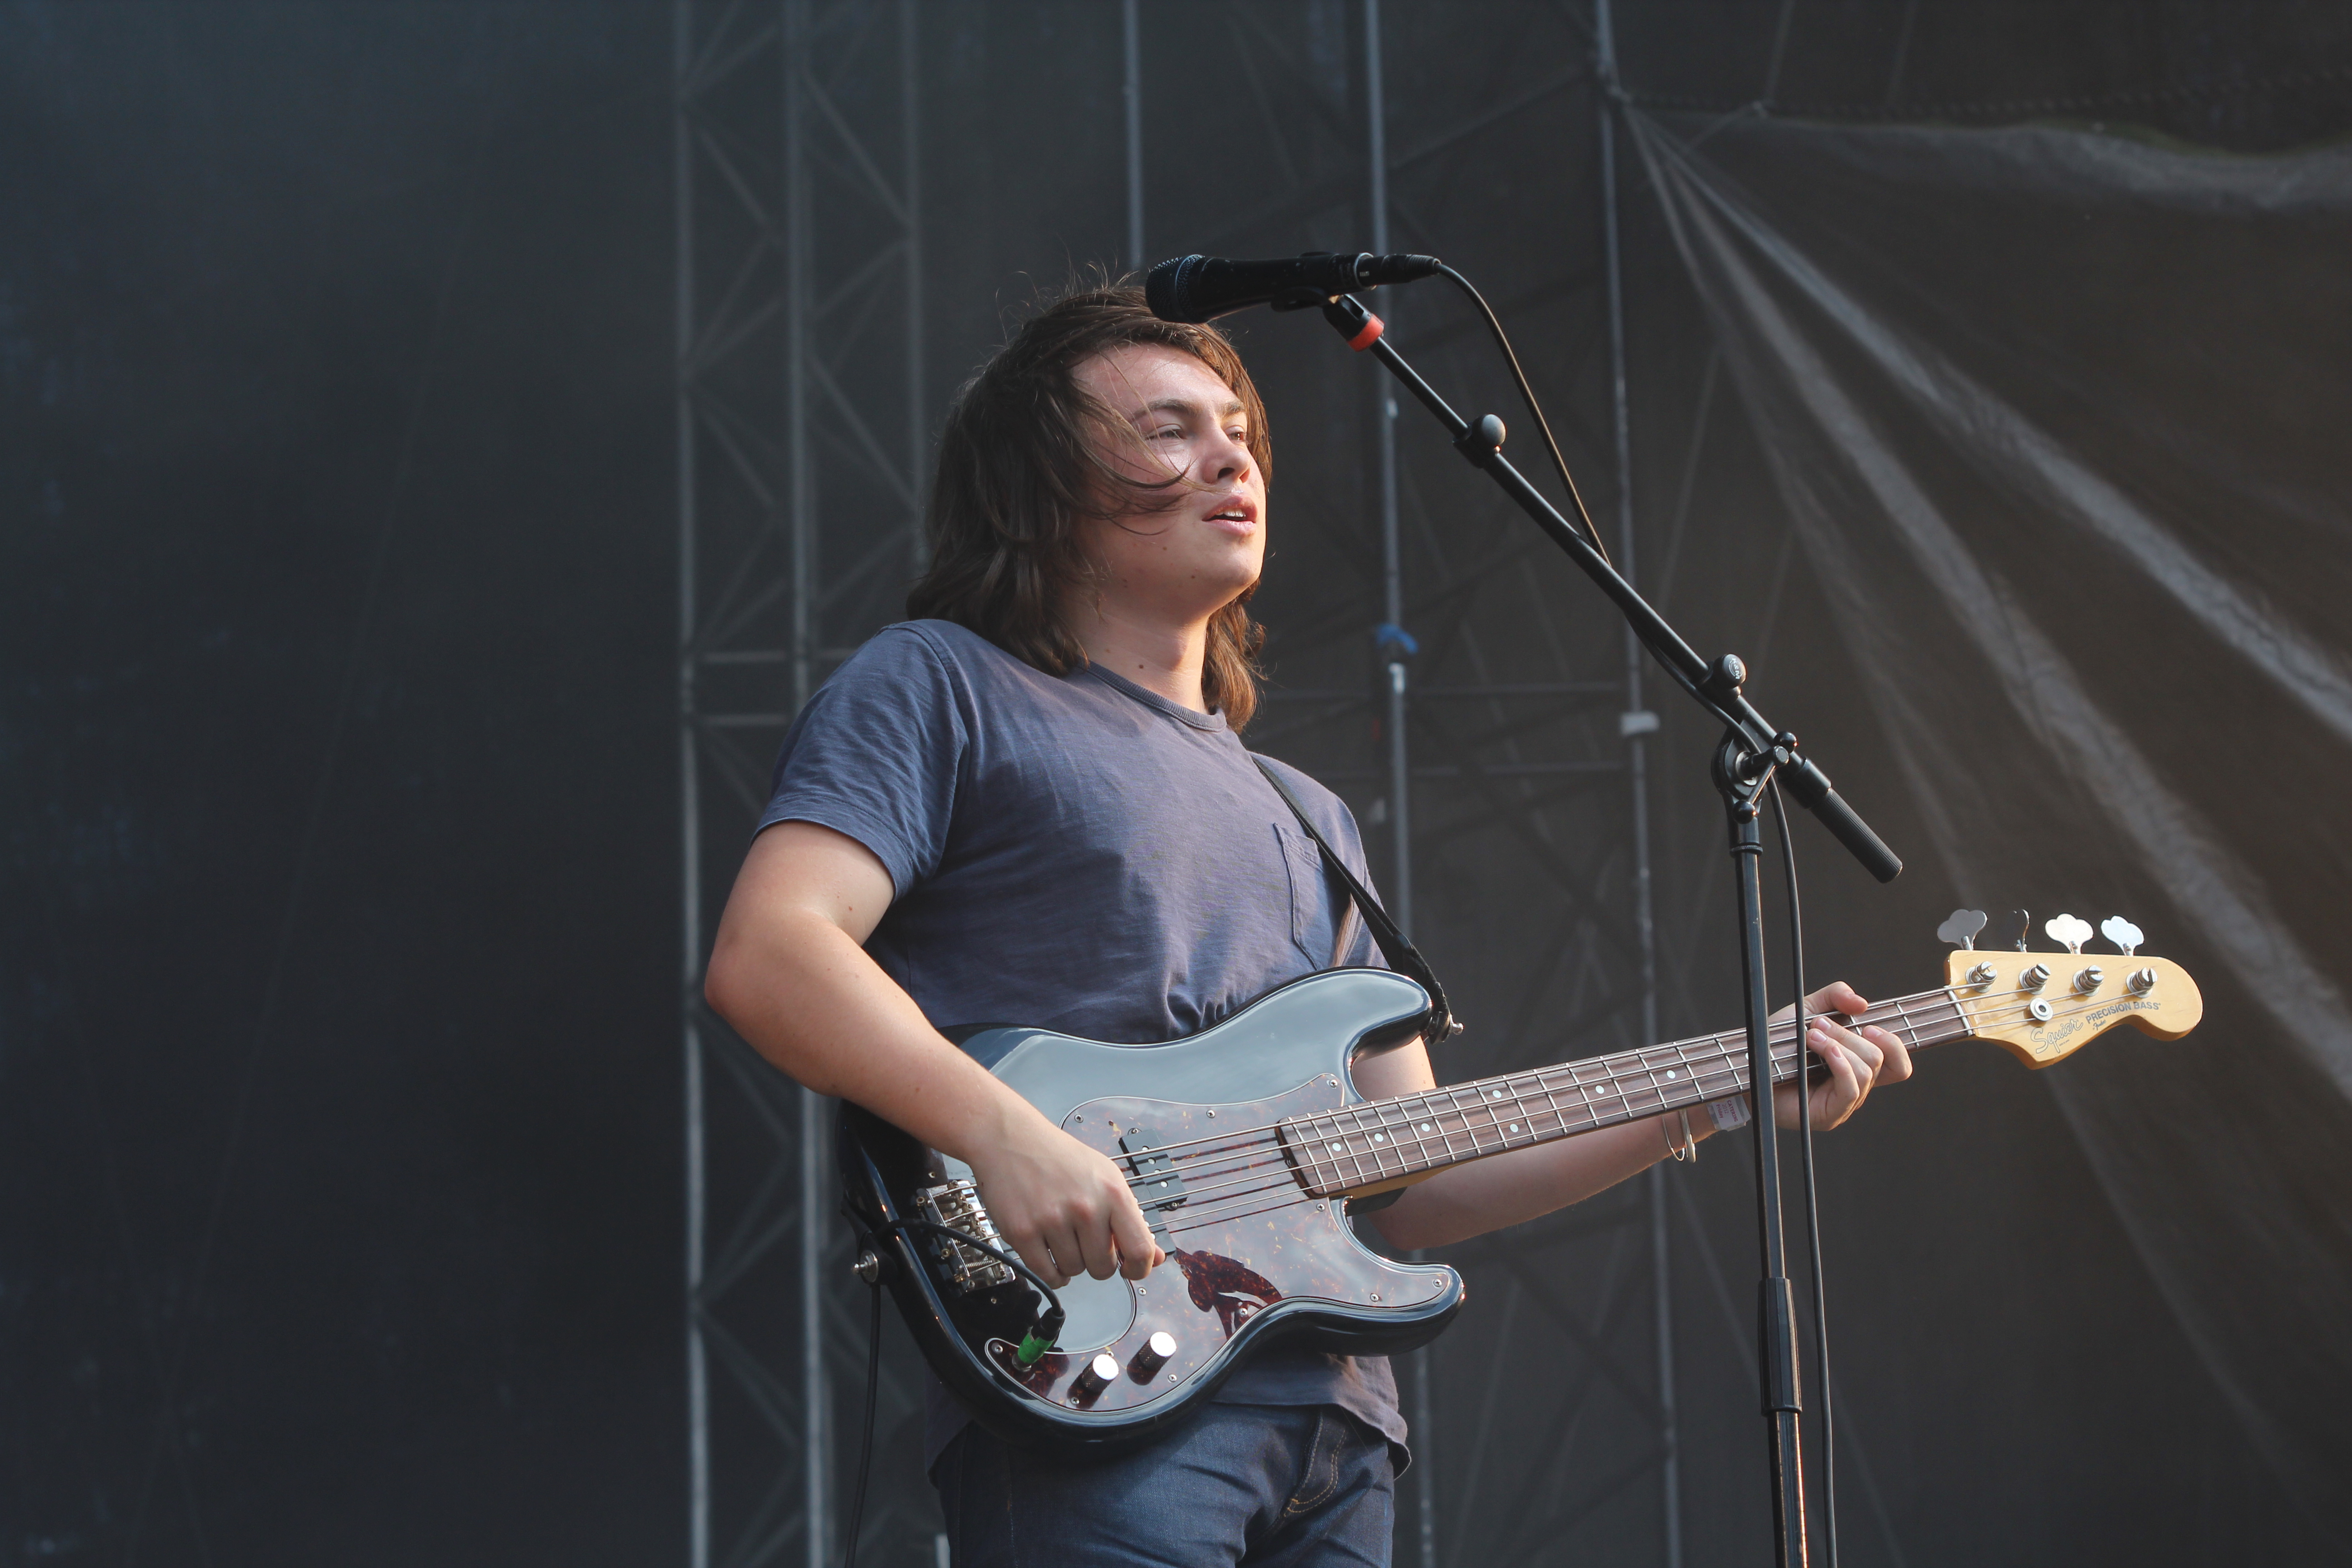 Bombay Bicycle Club @ Hultsfredsfestivalen 2012